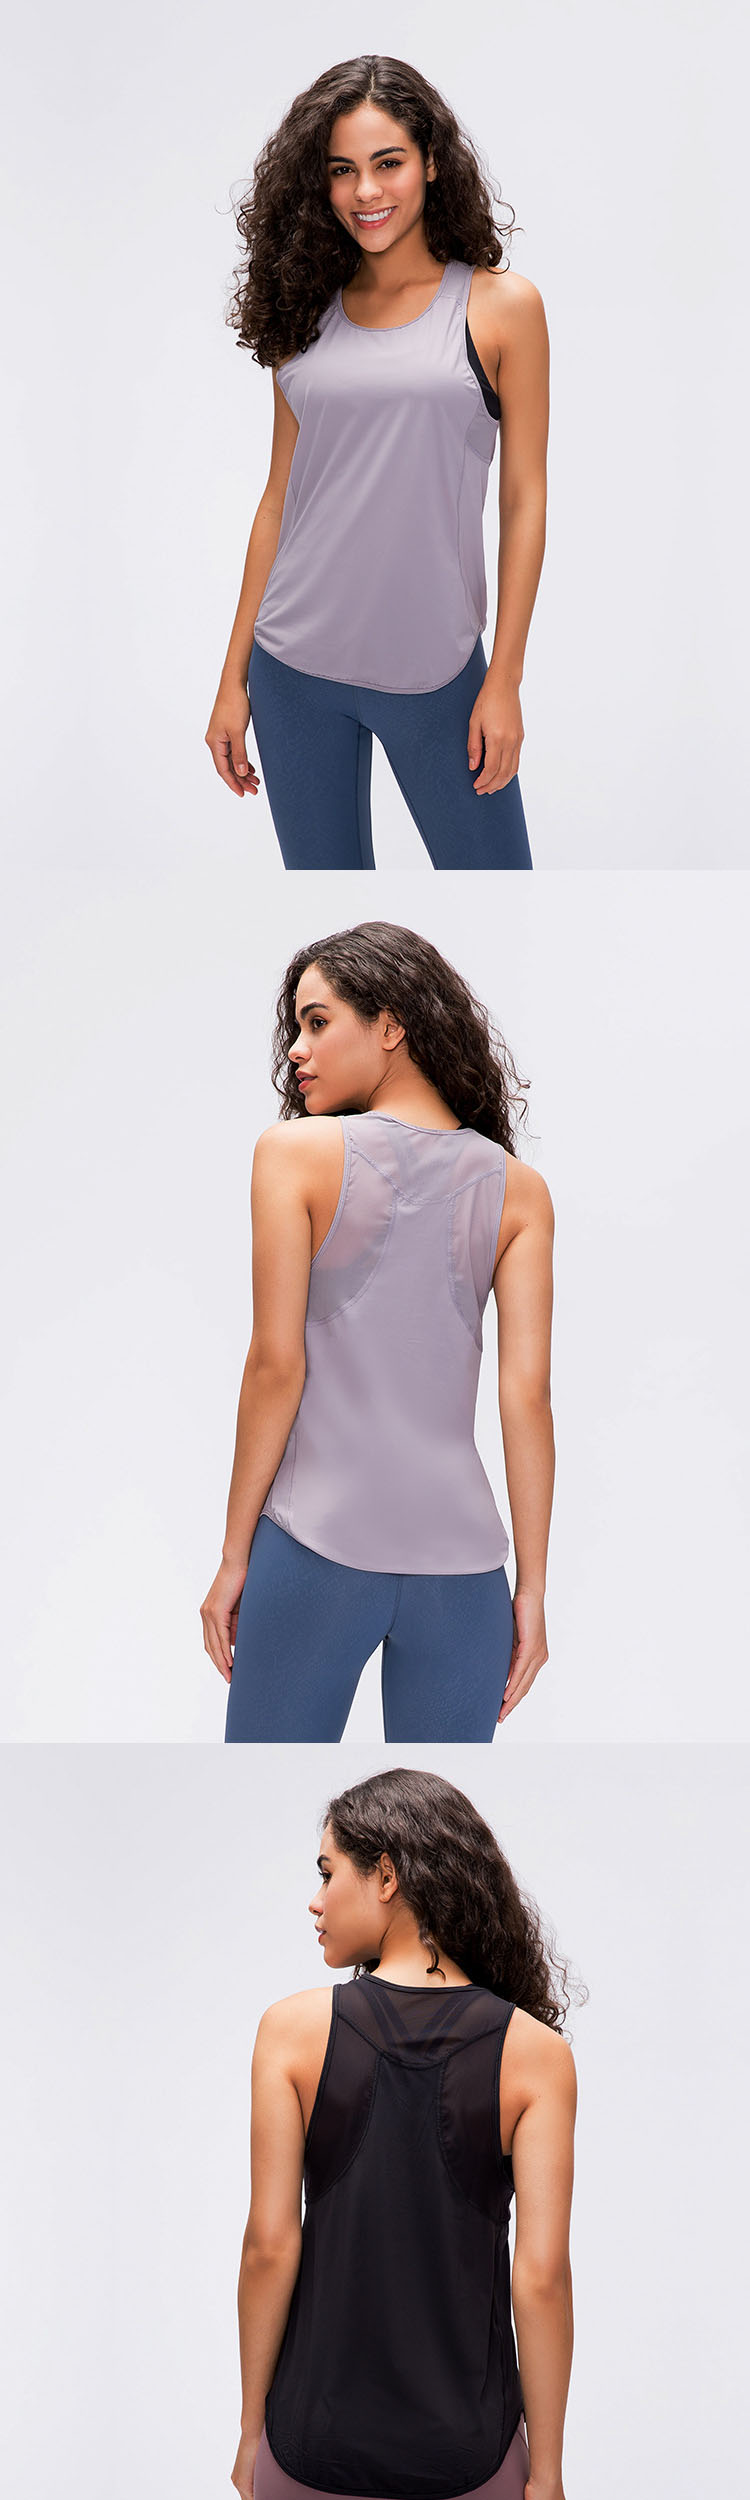 The sleeveless vest is more comfortable and free, and the movement is not stuffy.